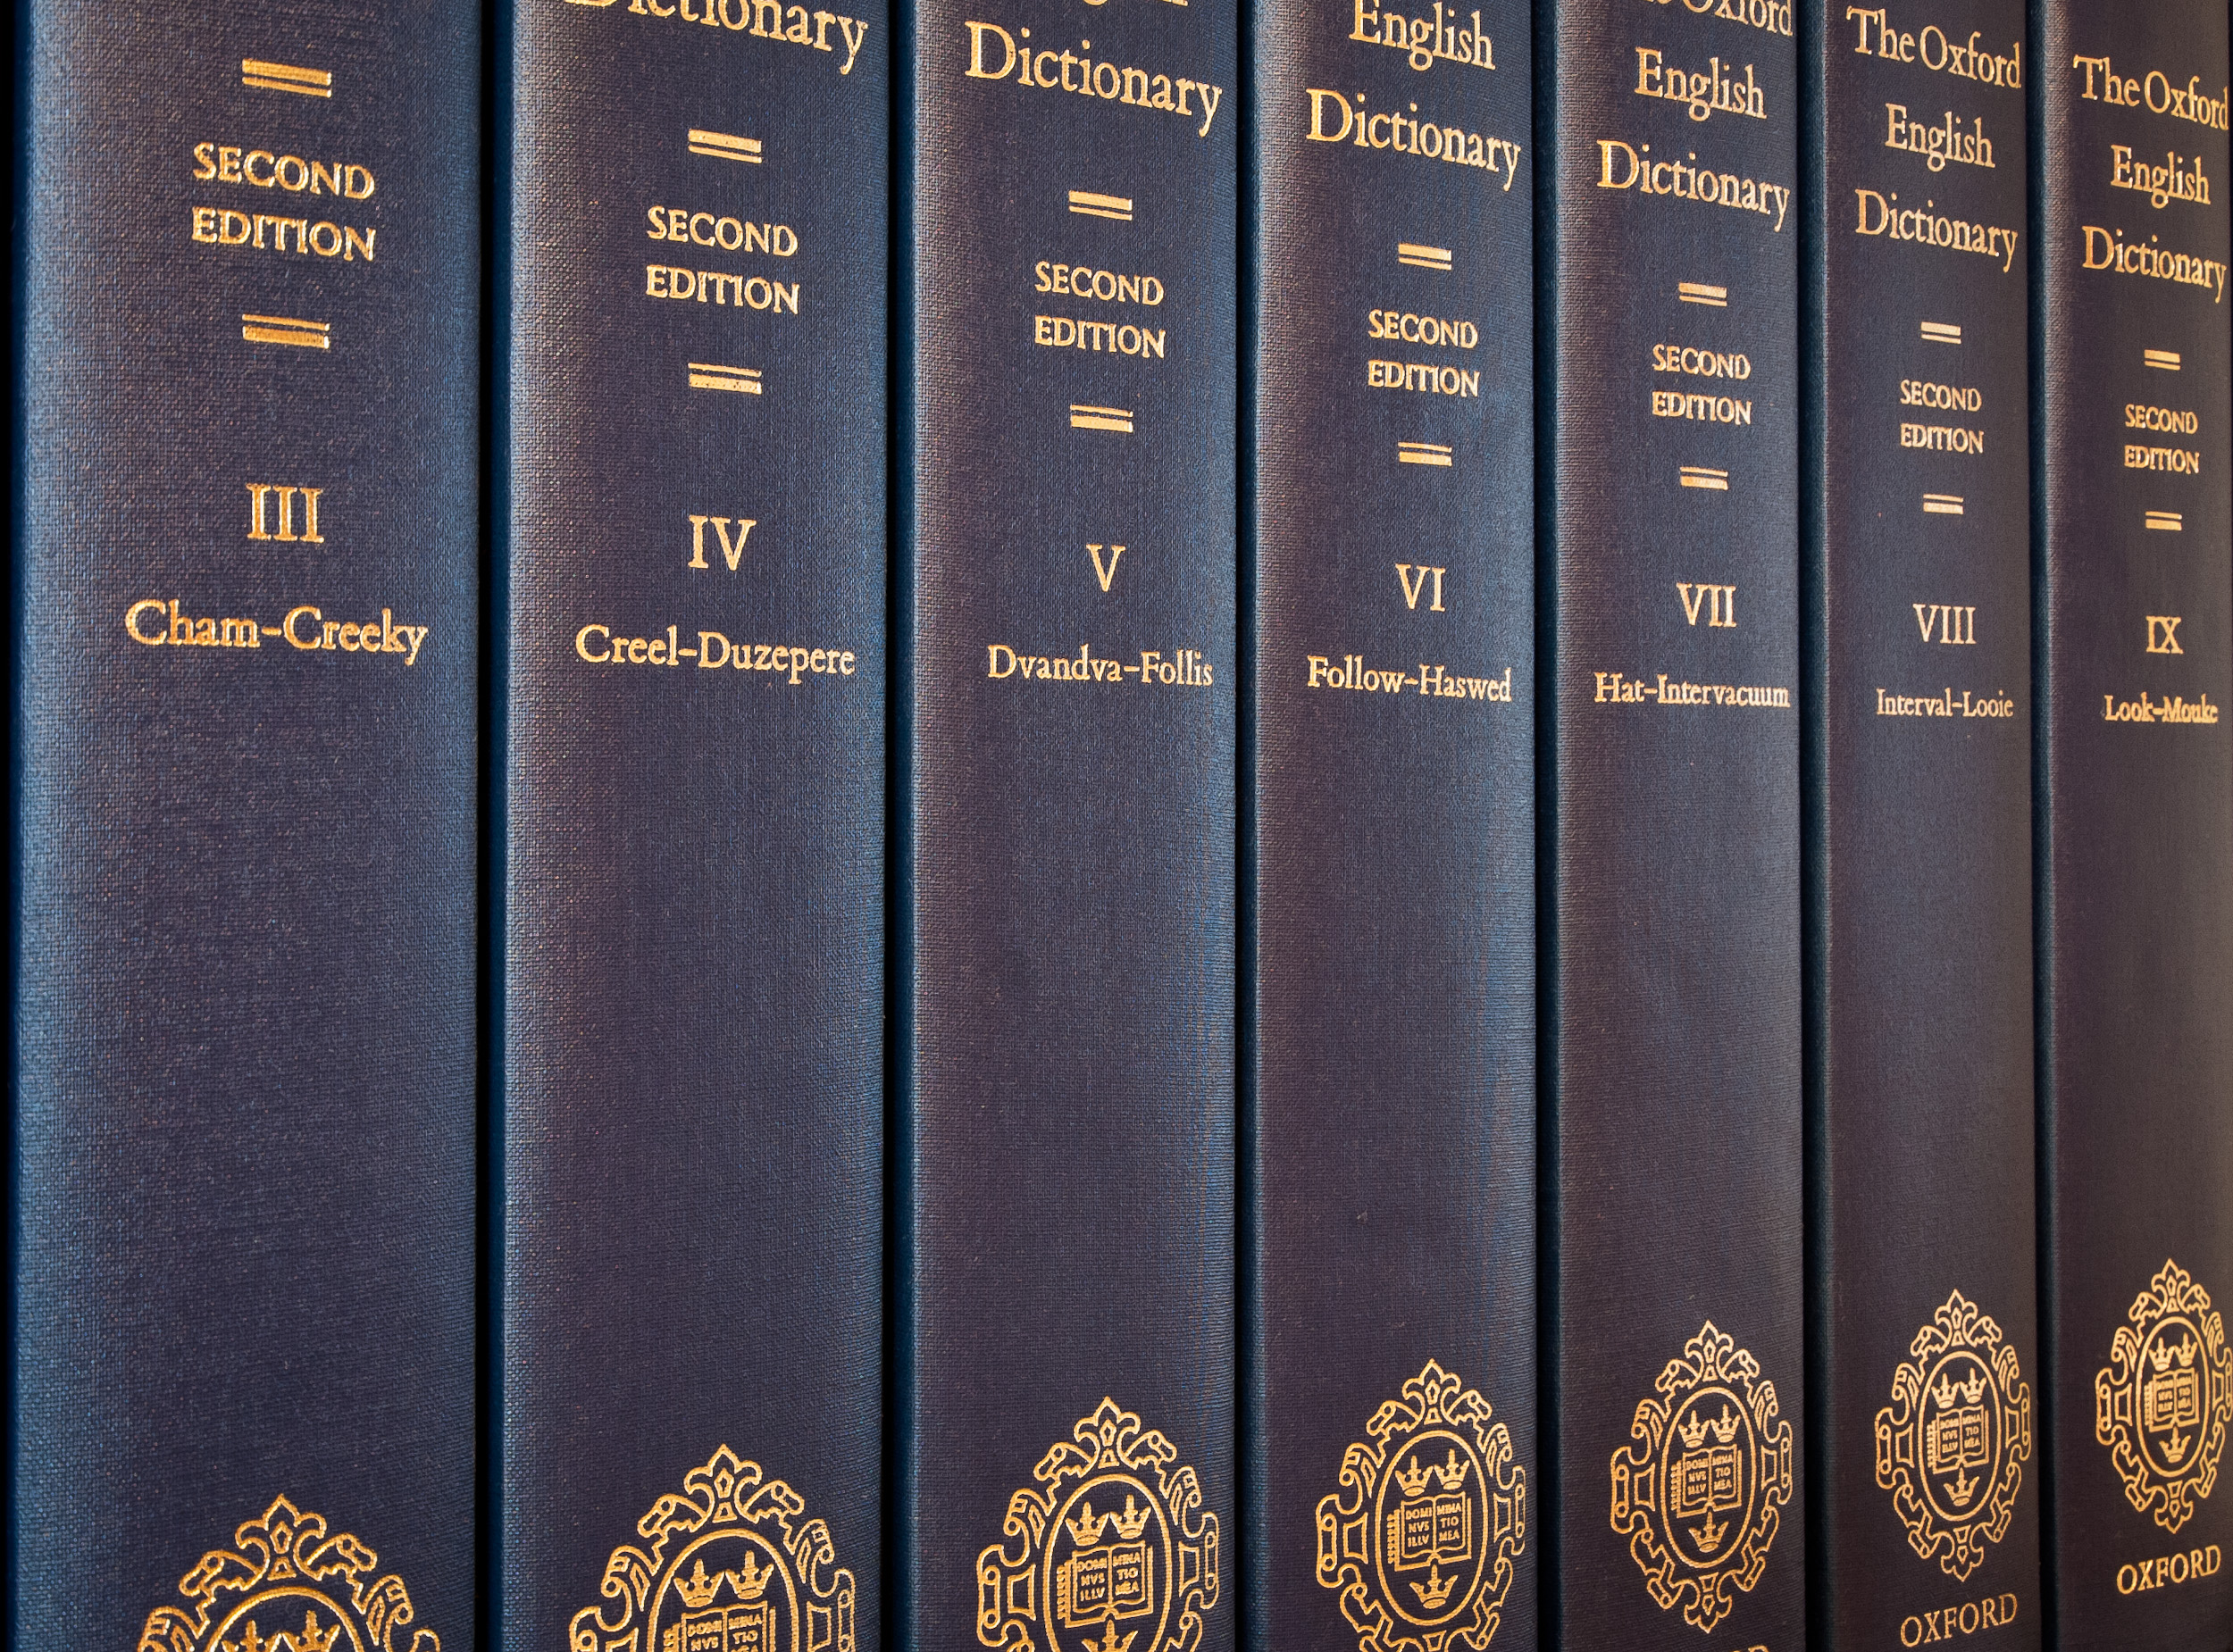 024 Oed2 Volumes Manual For Writers Of Researchs Theses And Dissertations Magnificent Research Papers A Amazon 9th Edition Pdf 8th 13 Full